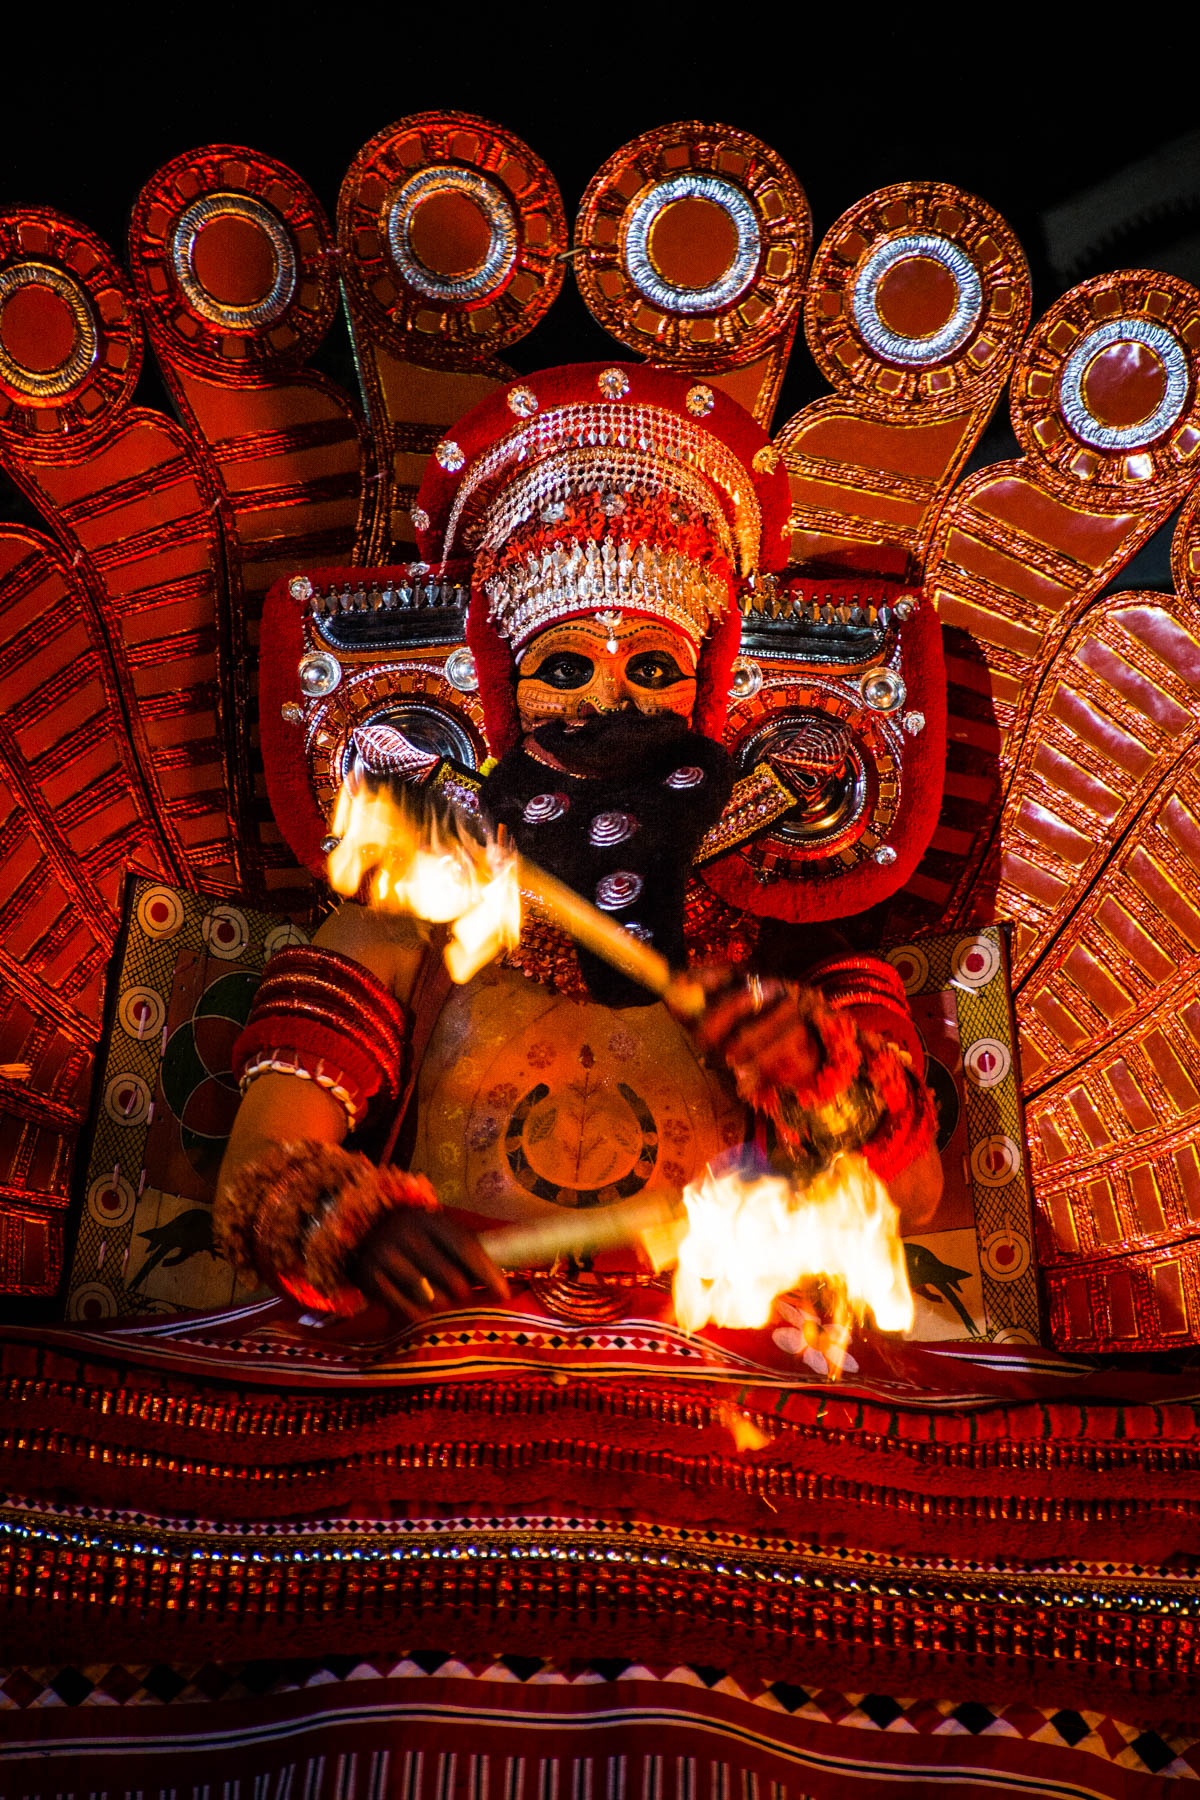 A close up shot of the Kutty Theyyam peformer playing with fire